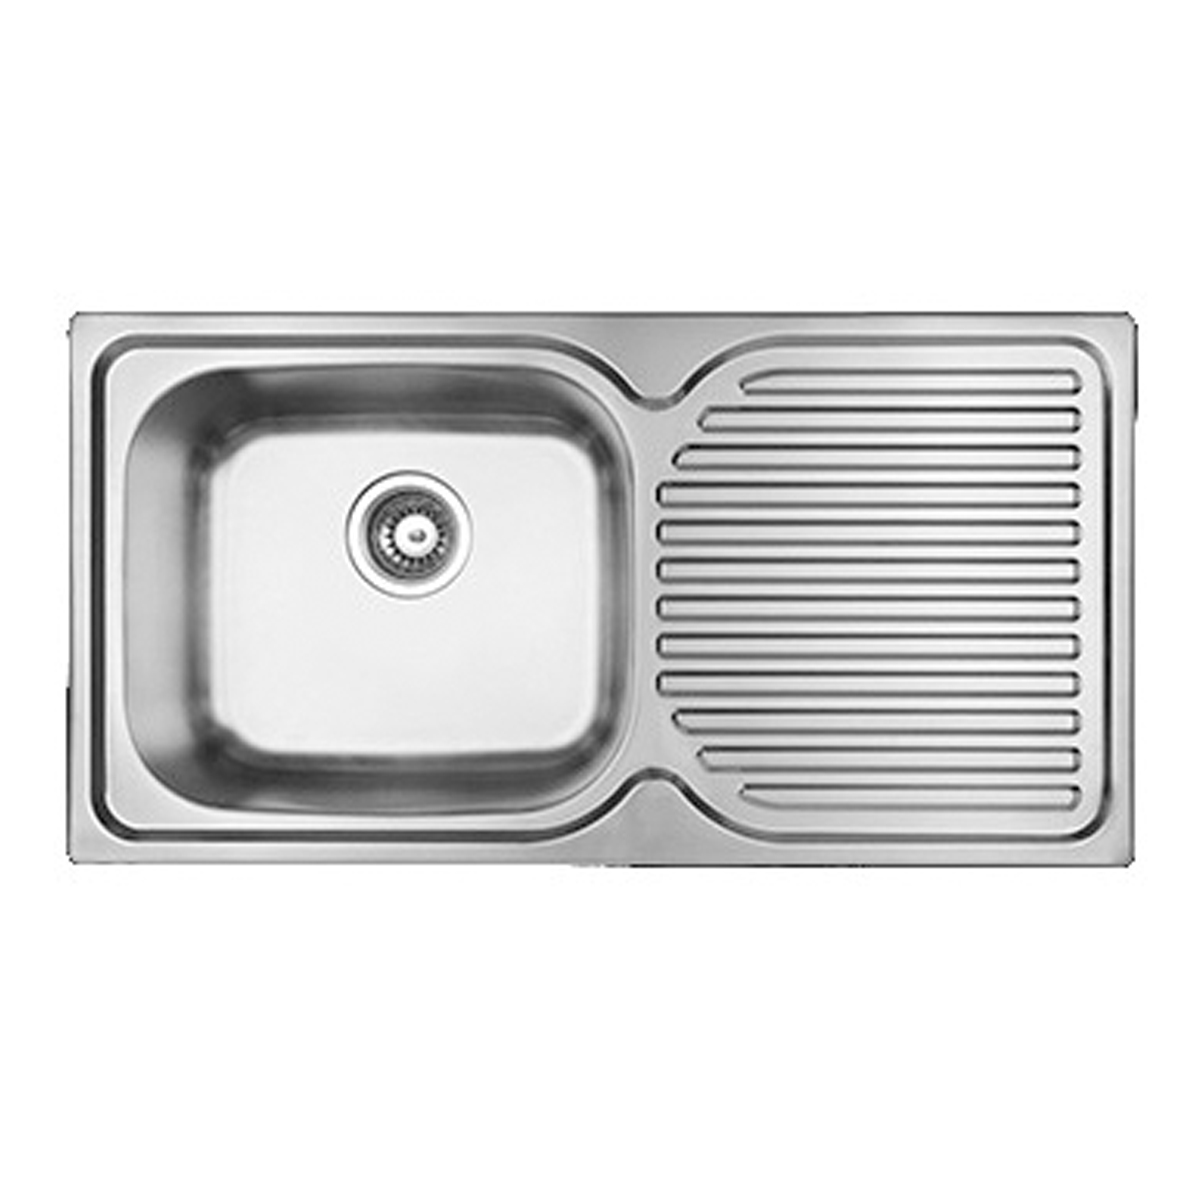 Abey PR100LPLUS Squareline Single Bowl Sink